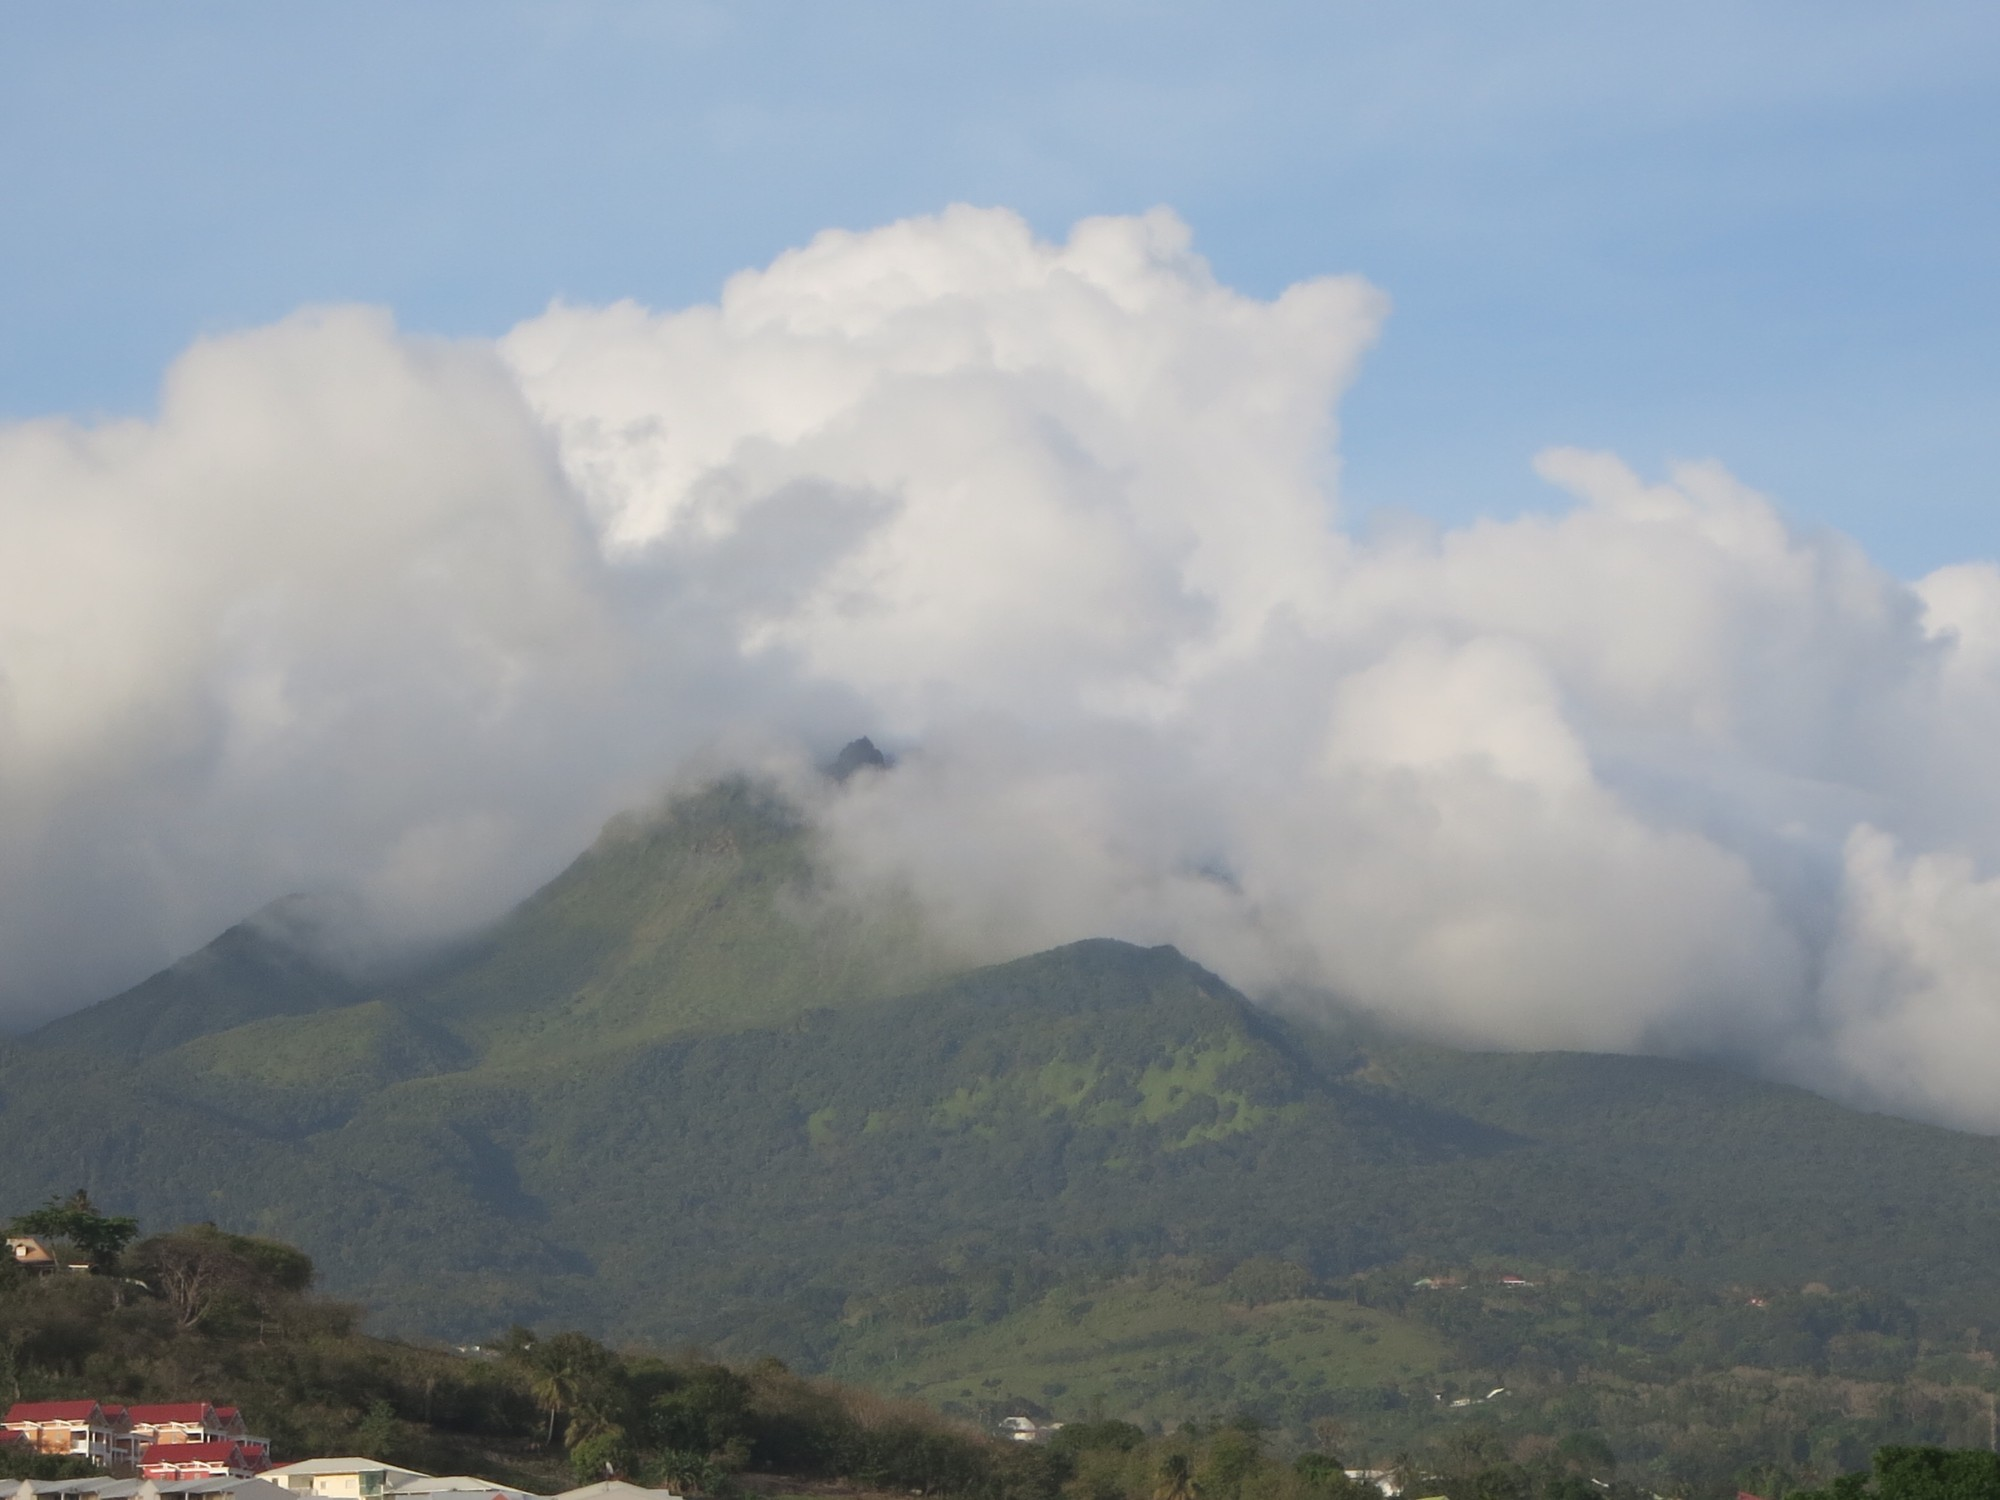 view of La Soufriere volcano, topped with clouds